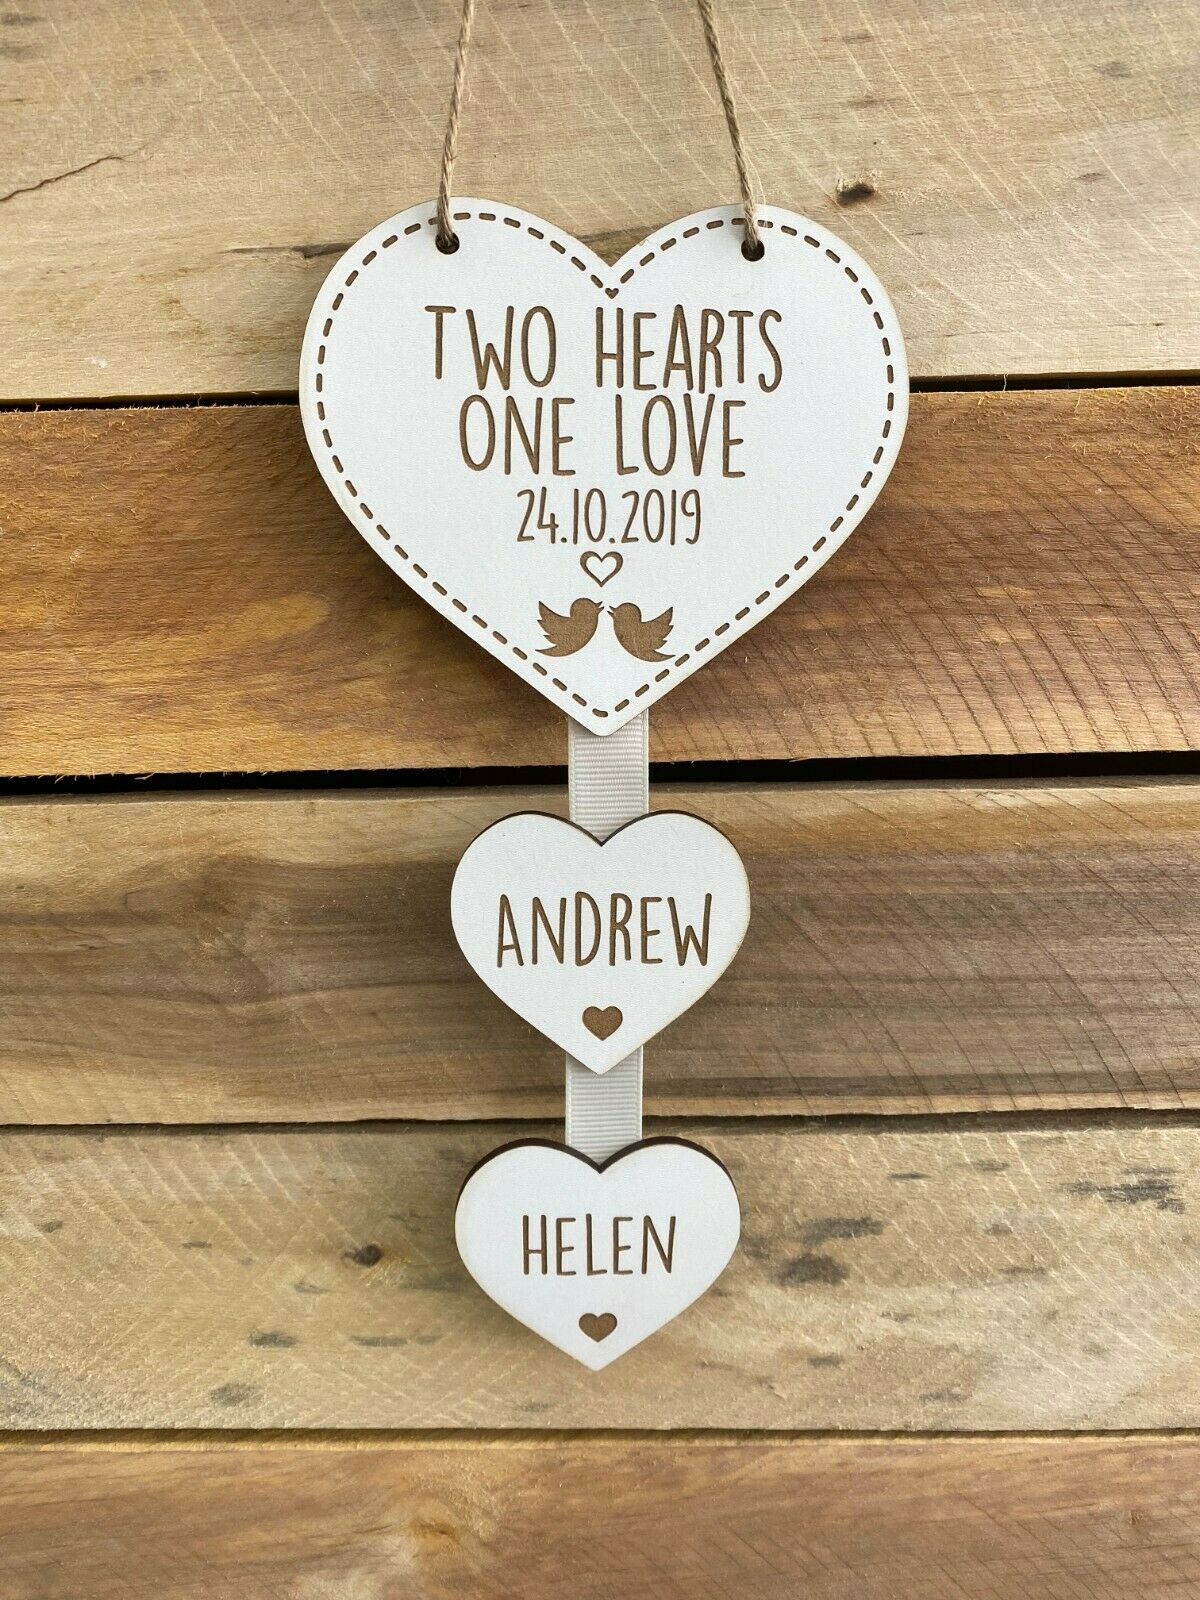 Little Gifts With Love - Personalised White Two Hearts One Love Hanging Heart Wedding Anniversary Valentines Gift